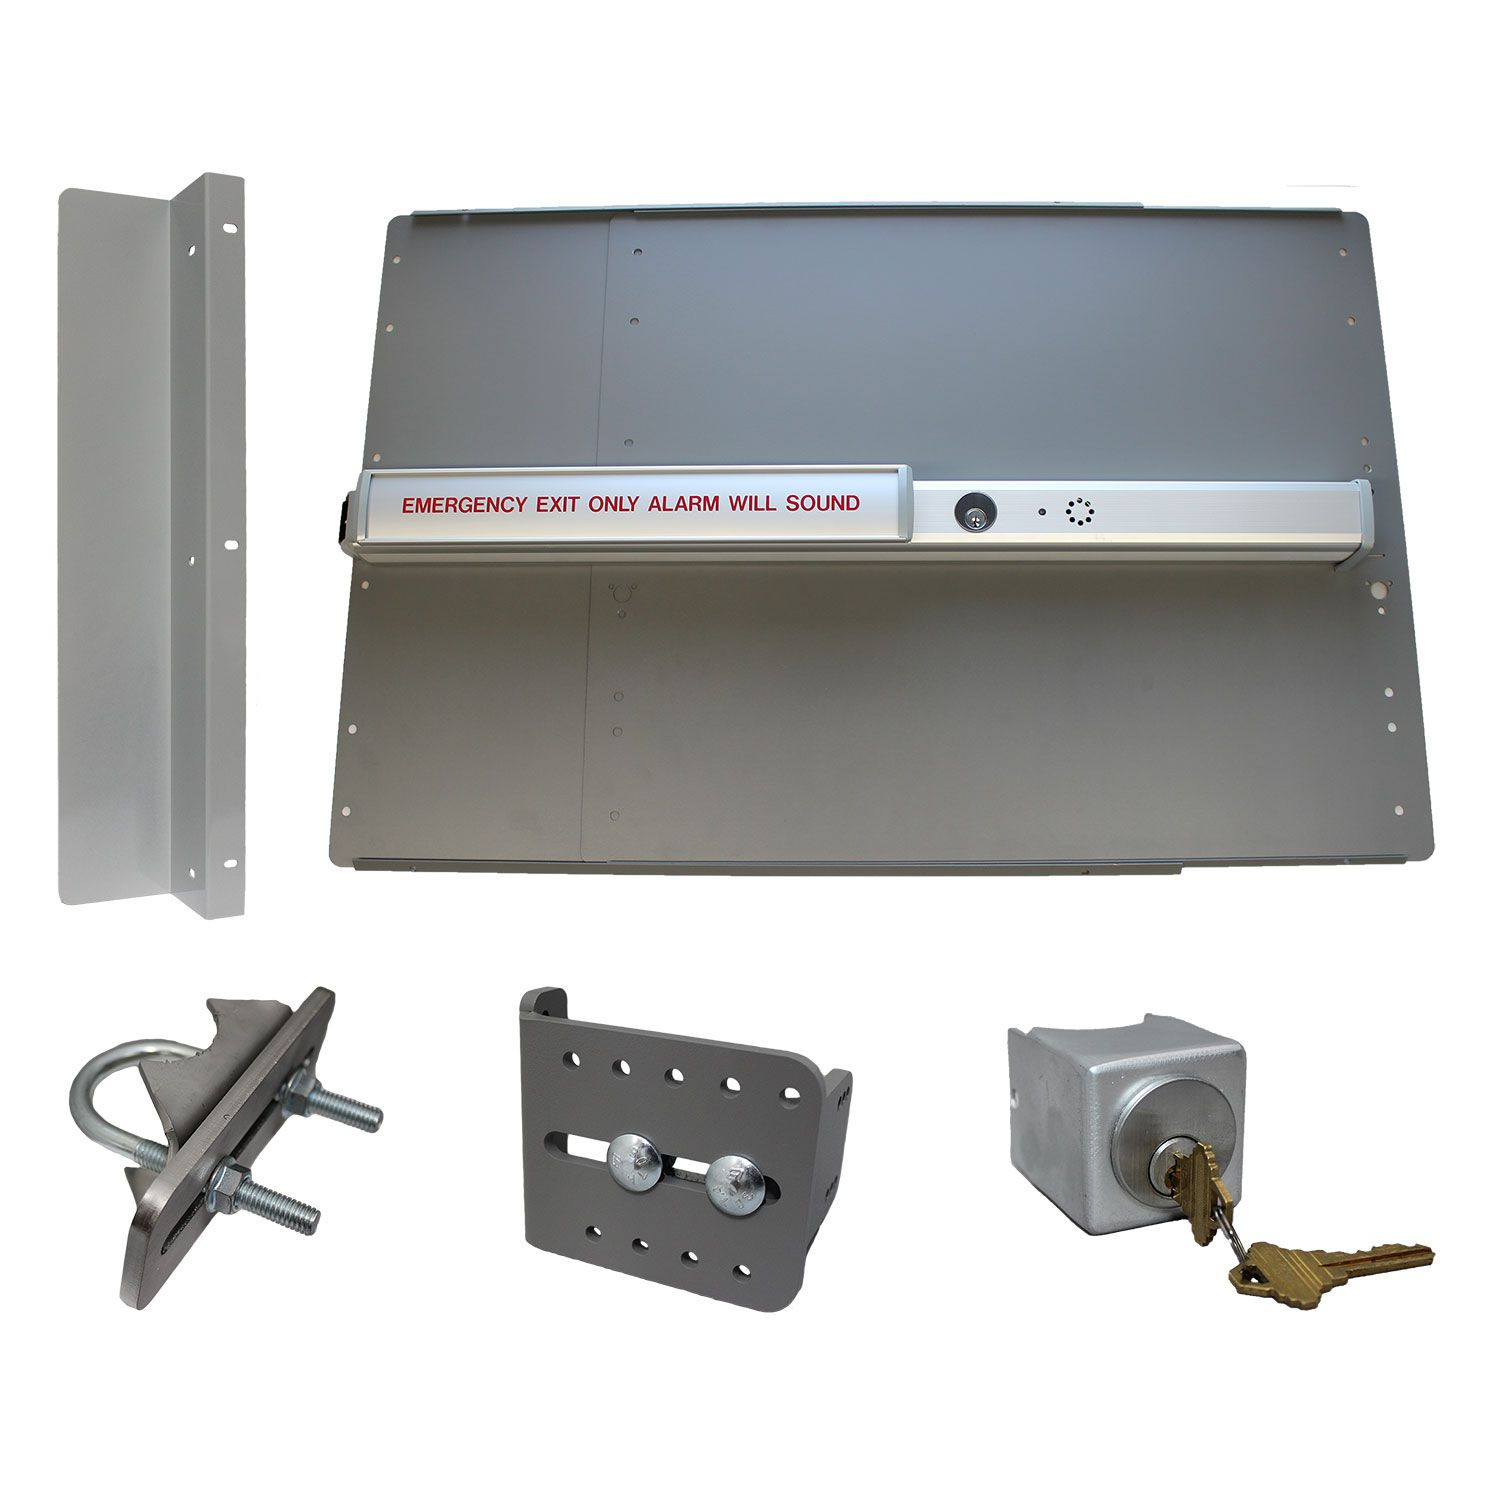 Lockey USA PS-2500-ALARM Edge Safety Panic Bar Kits for Gates